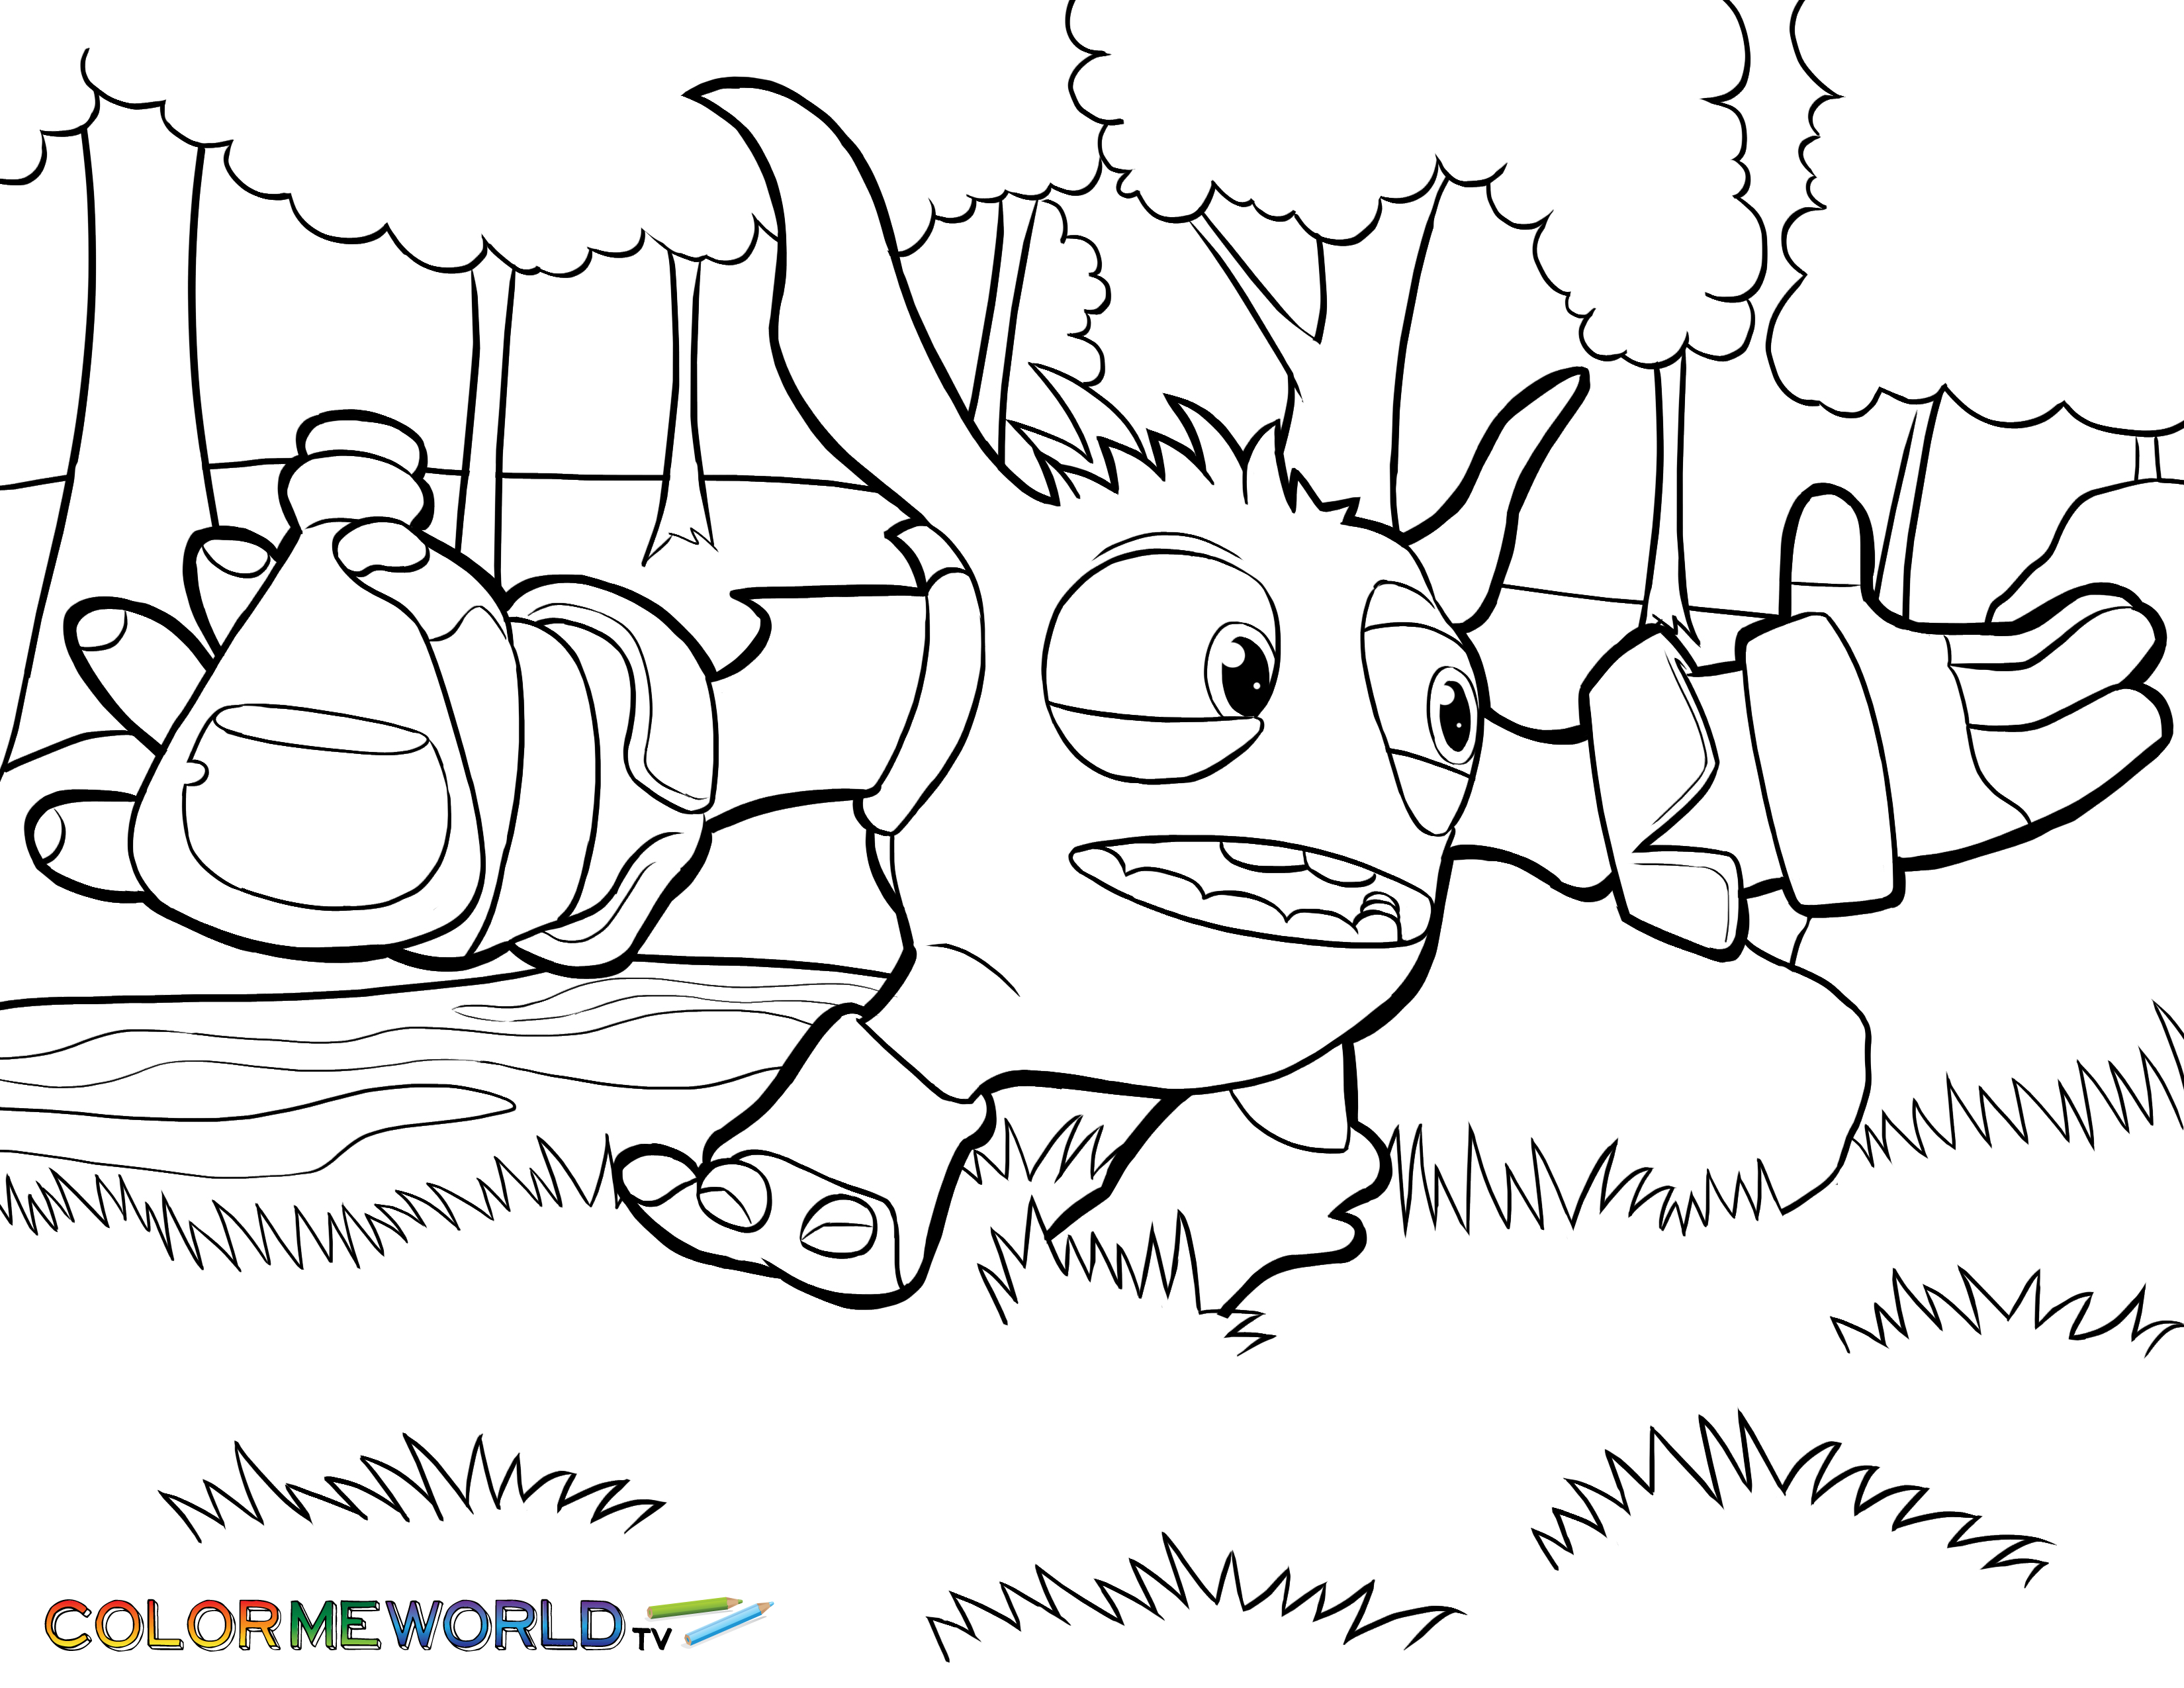 pop fizz coloring page - Free Colouring Page